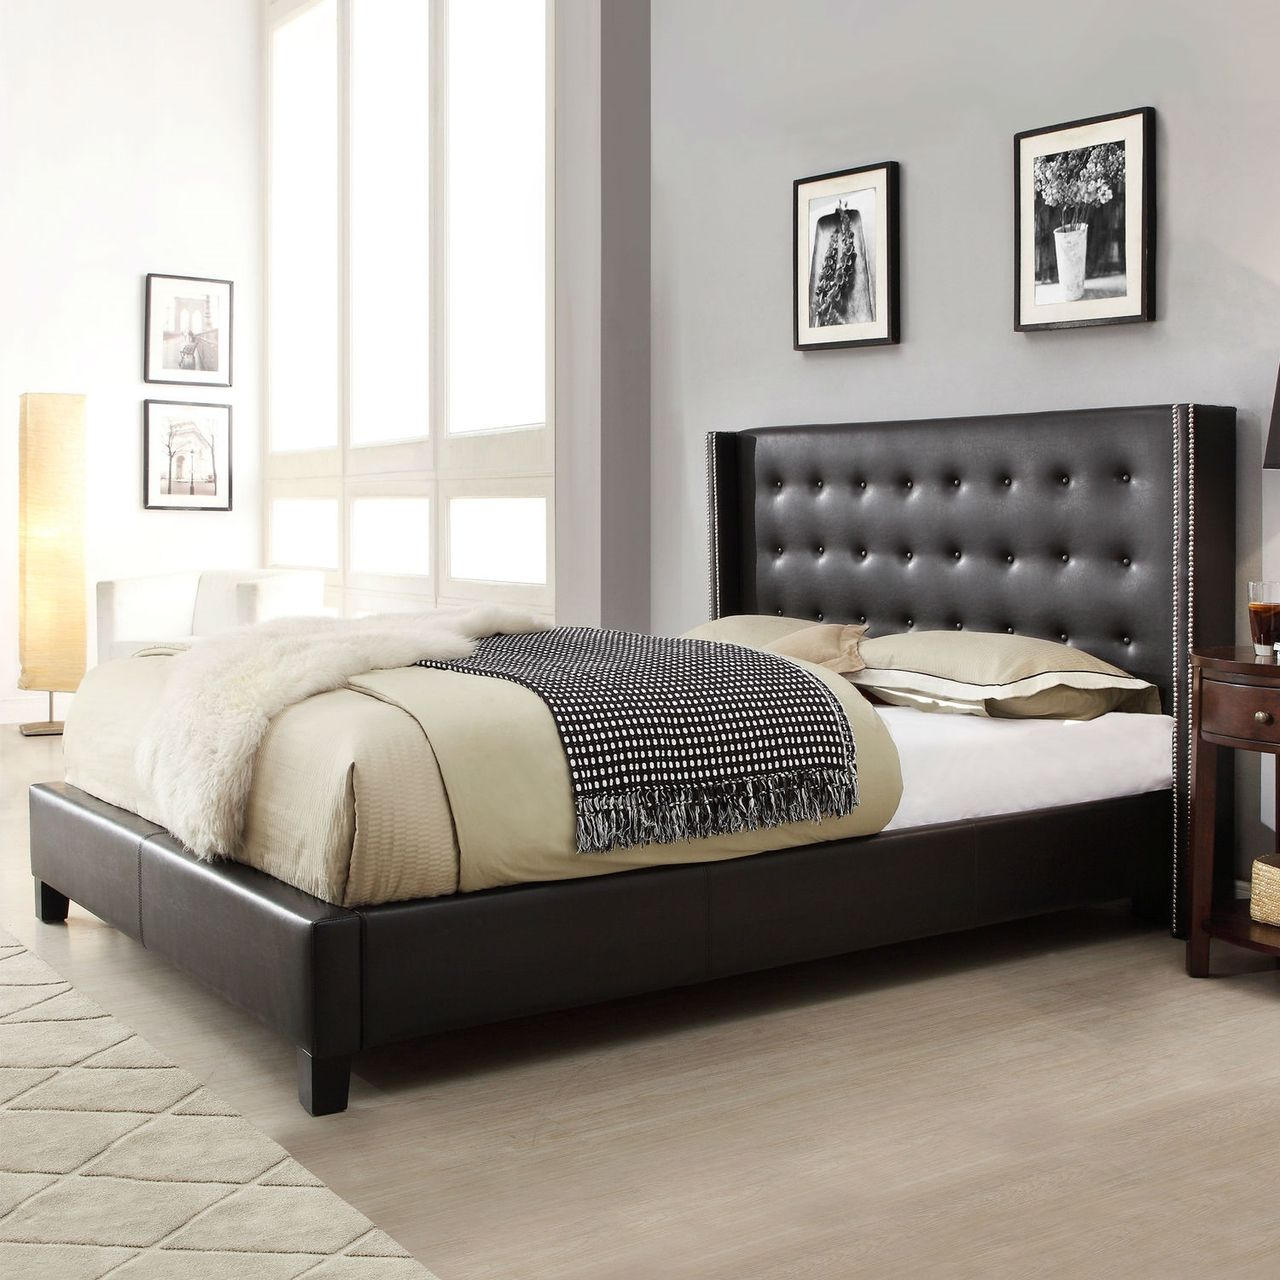 Queen Black Faux Leather Upholstered Bed With Wingback